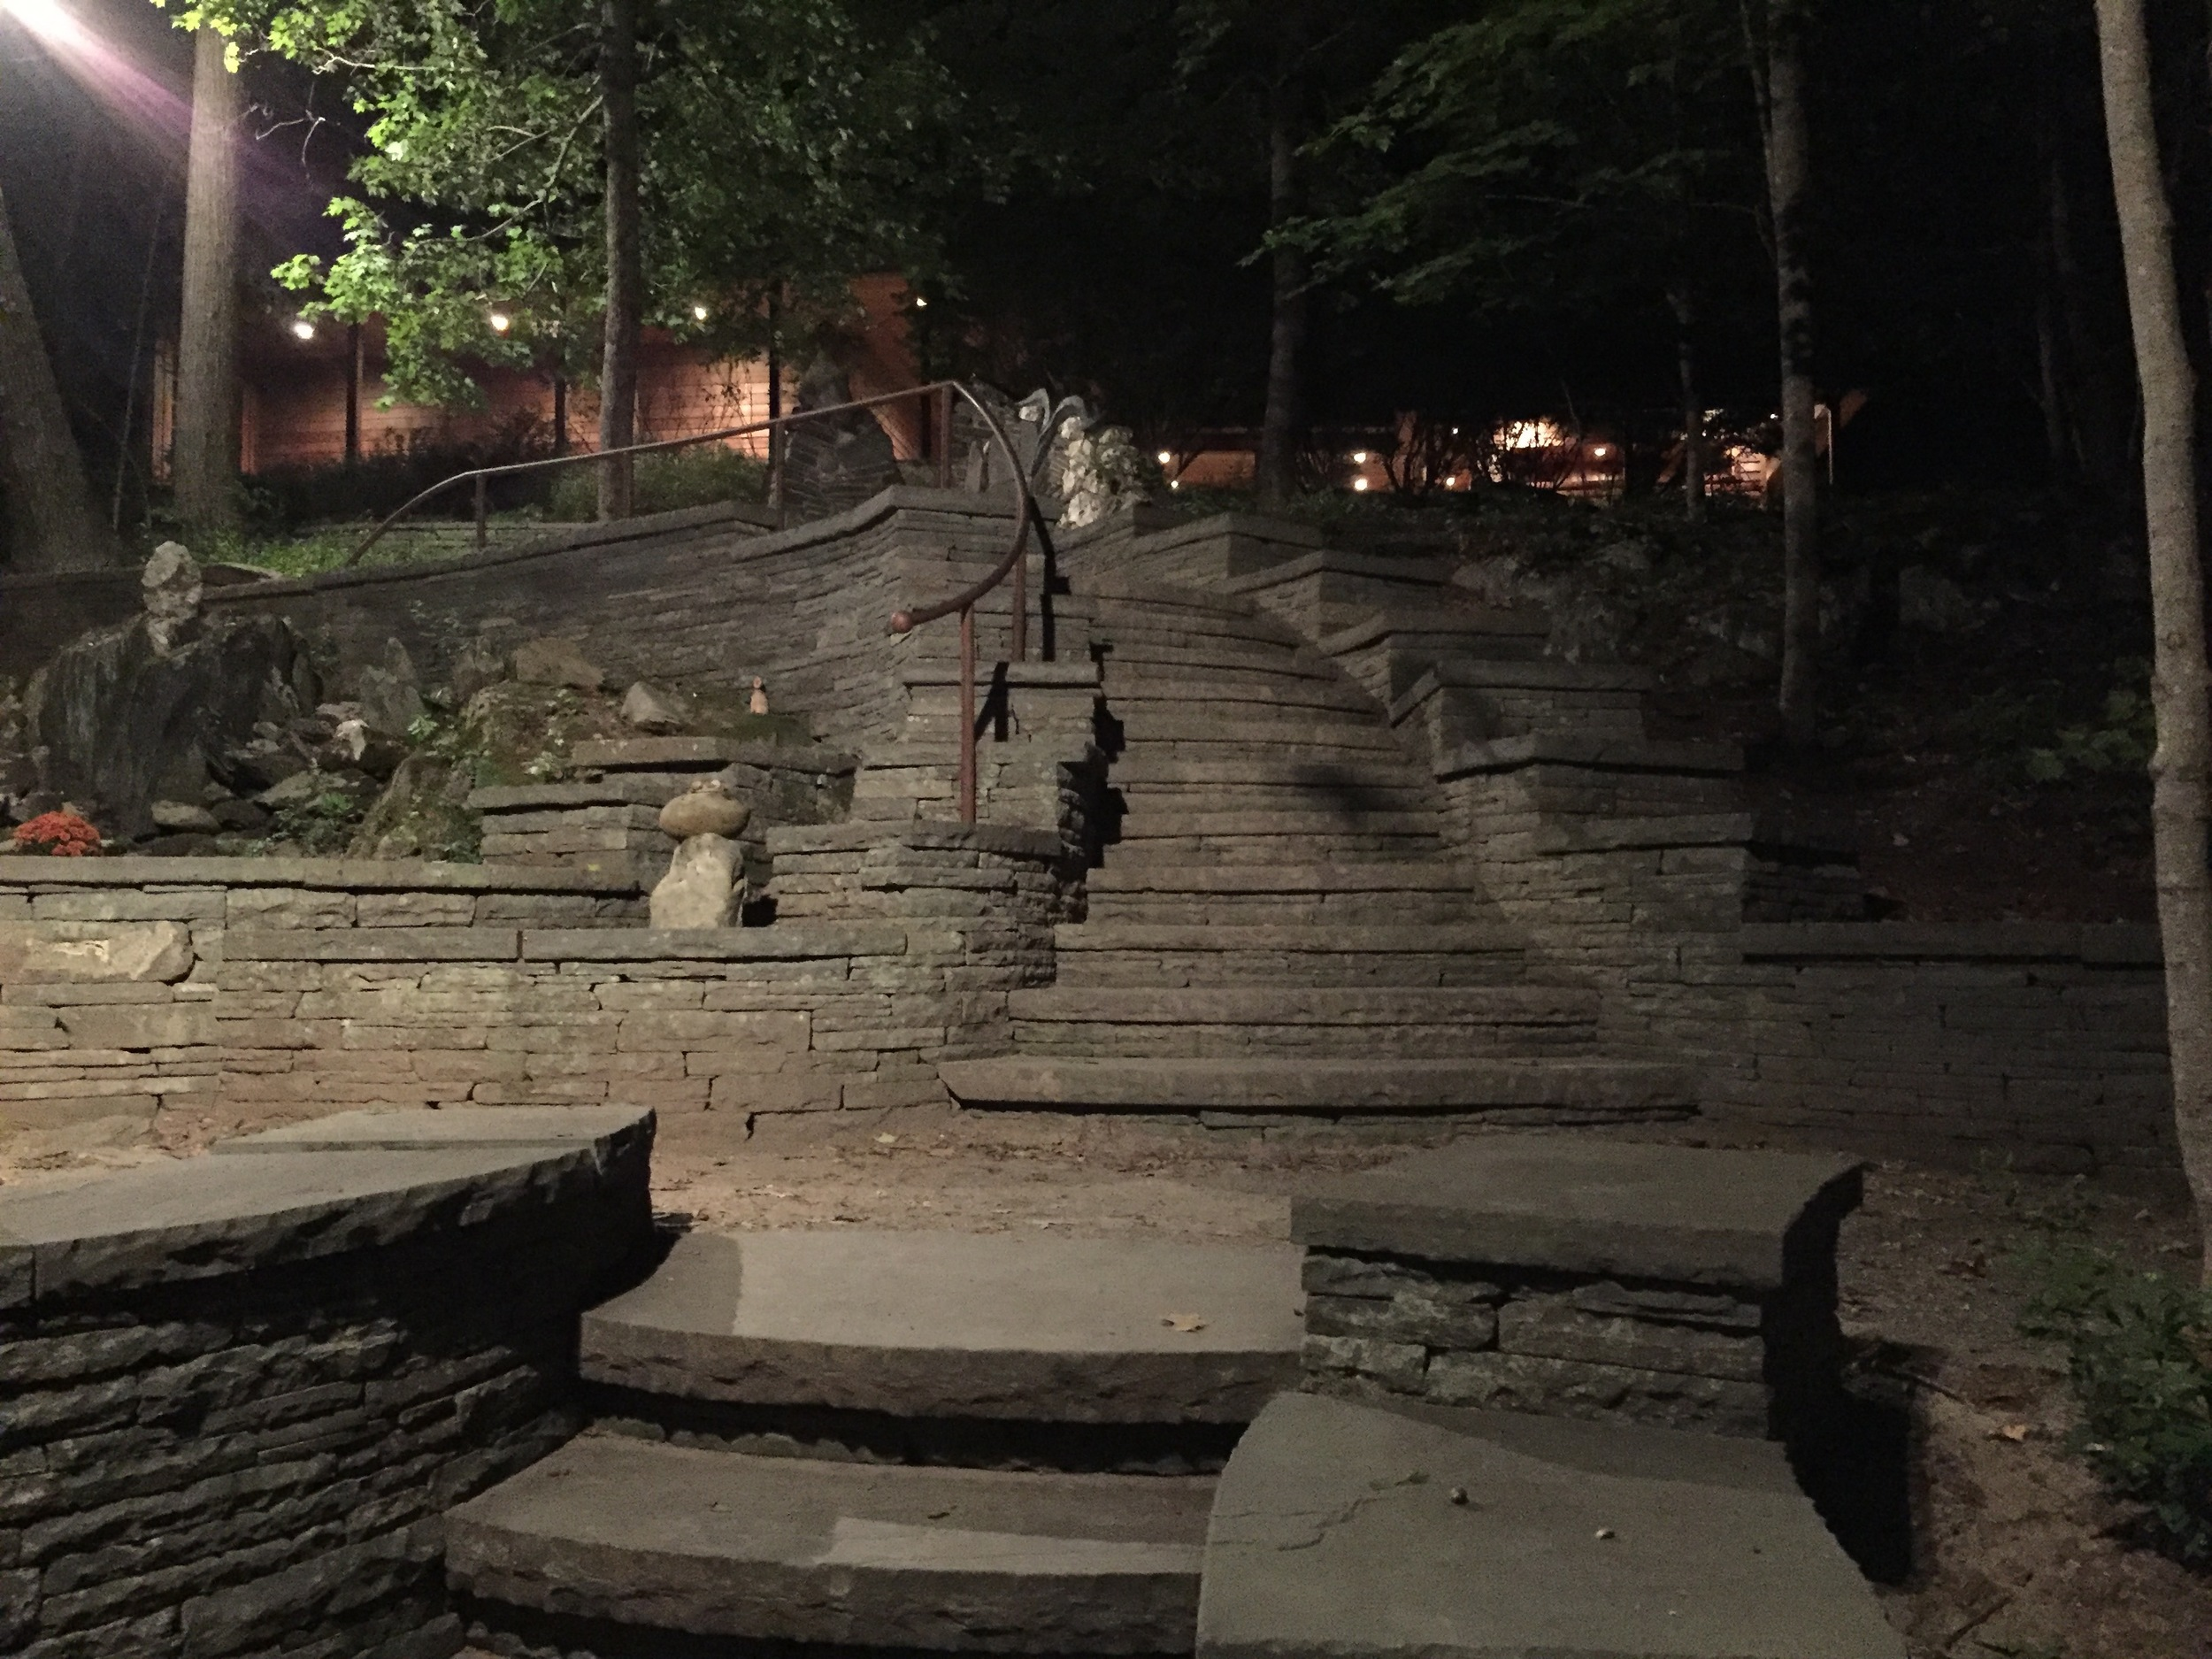 Omega Institute of Holistic Studies,Rhinebeck, NY, September 27, 2015   Steps climbing to the Sanctuary